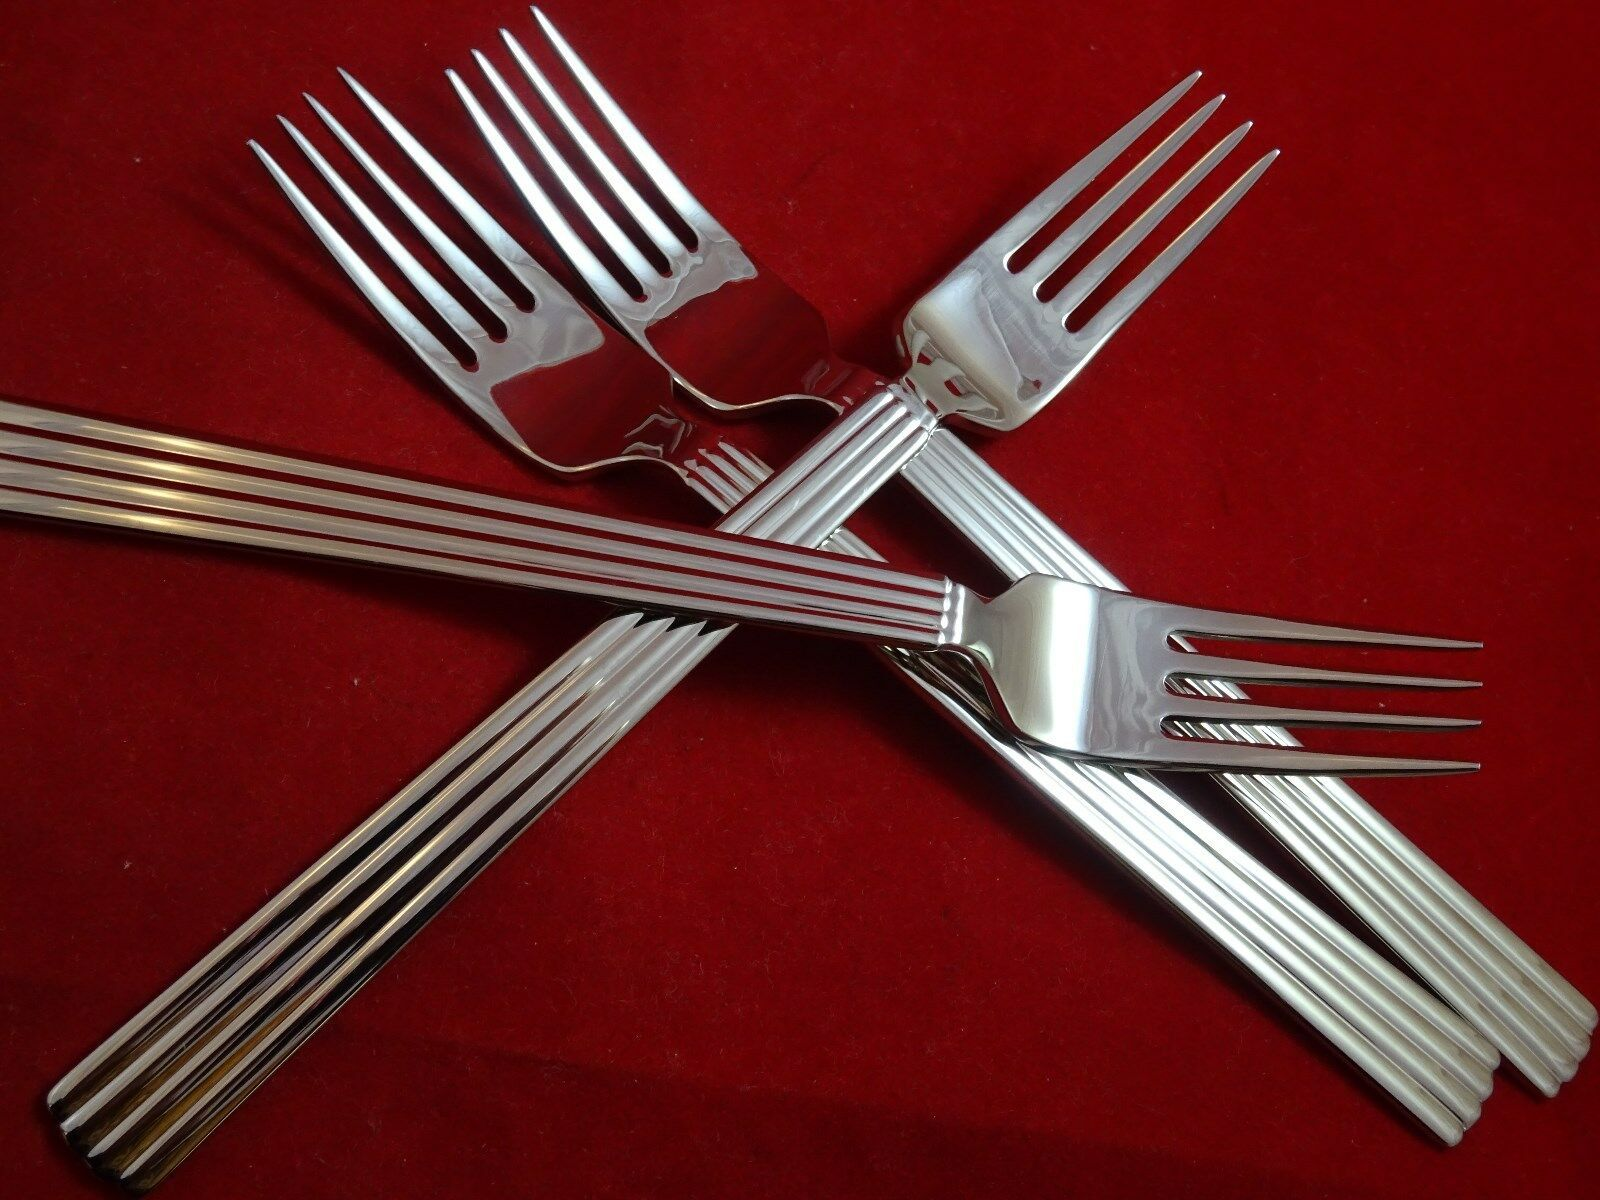 4 New Bernadotte Stainless Steel Luncheon Forks  by Georg Jensen   - $120.00